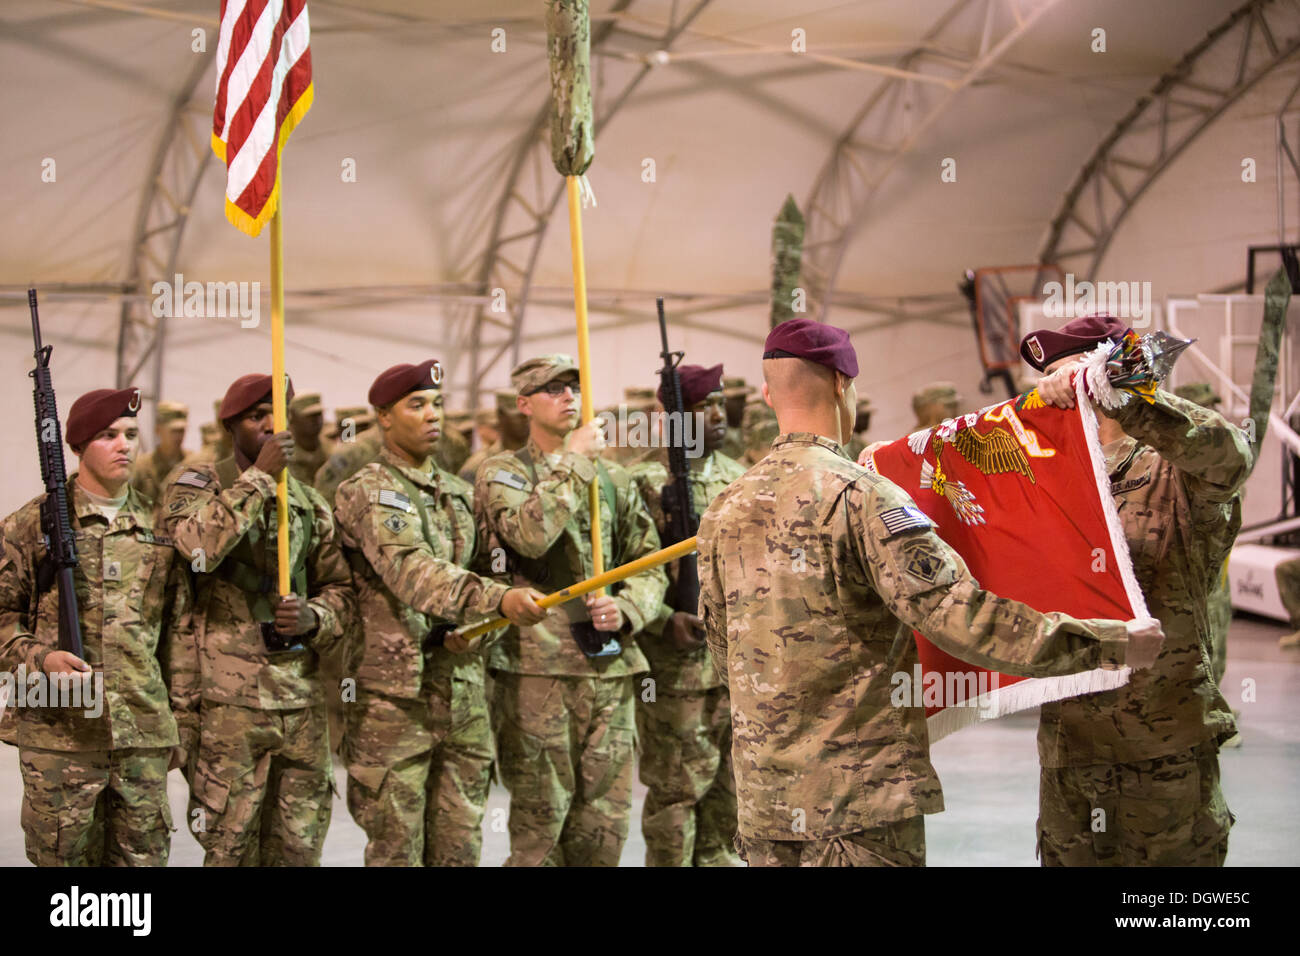 U.S. Army Lt. Col. Brett Sylvia, left, and Sgt. Maj. Steven Tetreault, commanding officer and command sergeant major of Task Force SAW, respectively, case the unit's colors during a ceremony at Camp Leatherneck, Helmand province, Afghanistan, Oct. 21, 201 - Stock Image